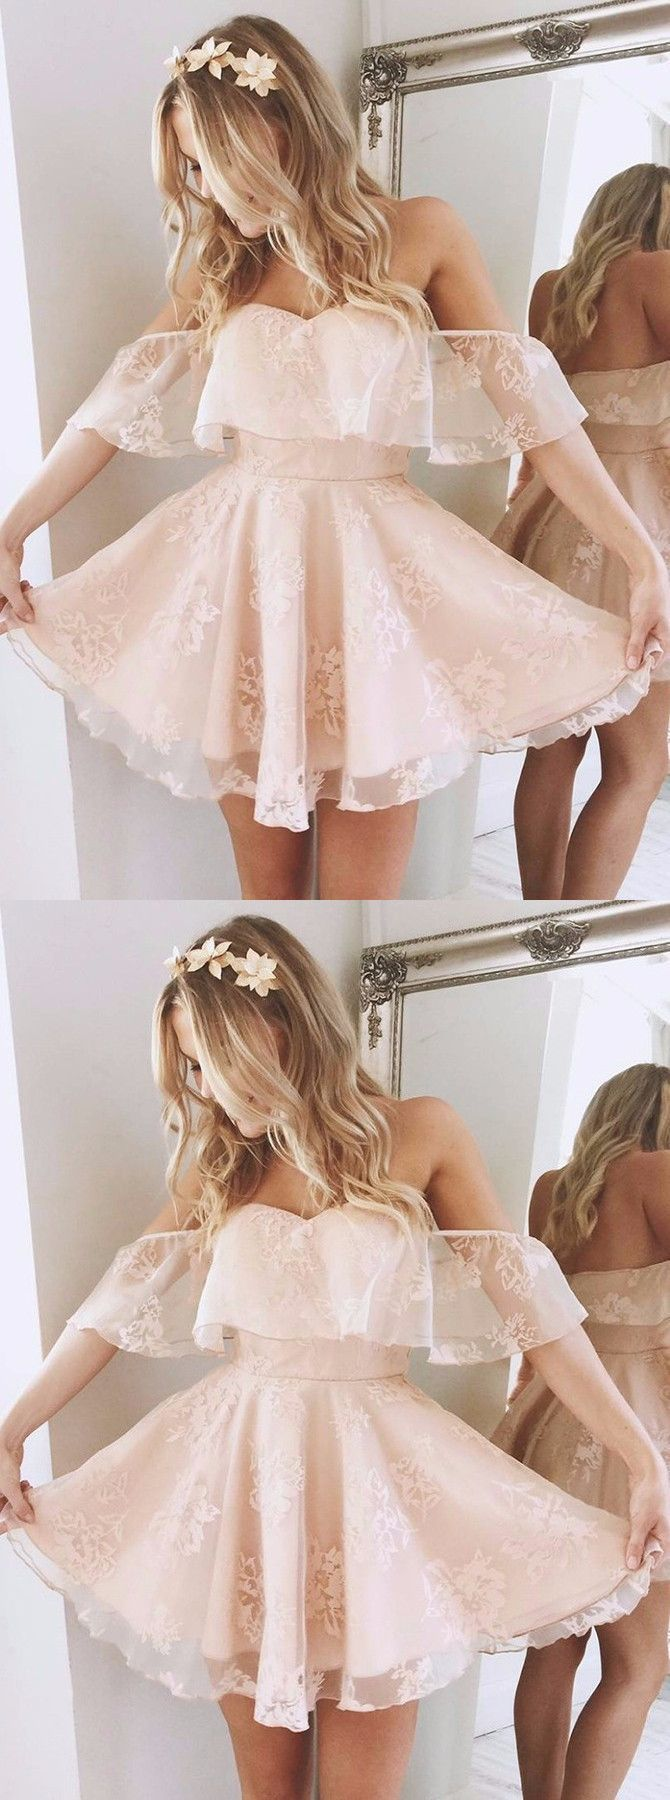 Cute dresses for dances best outfits simple homecoming dresses